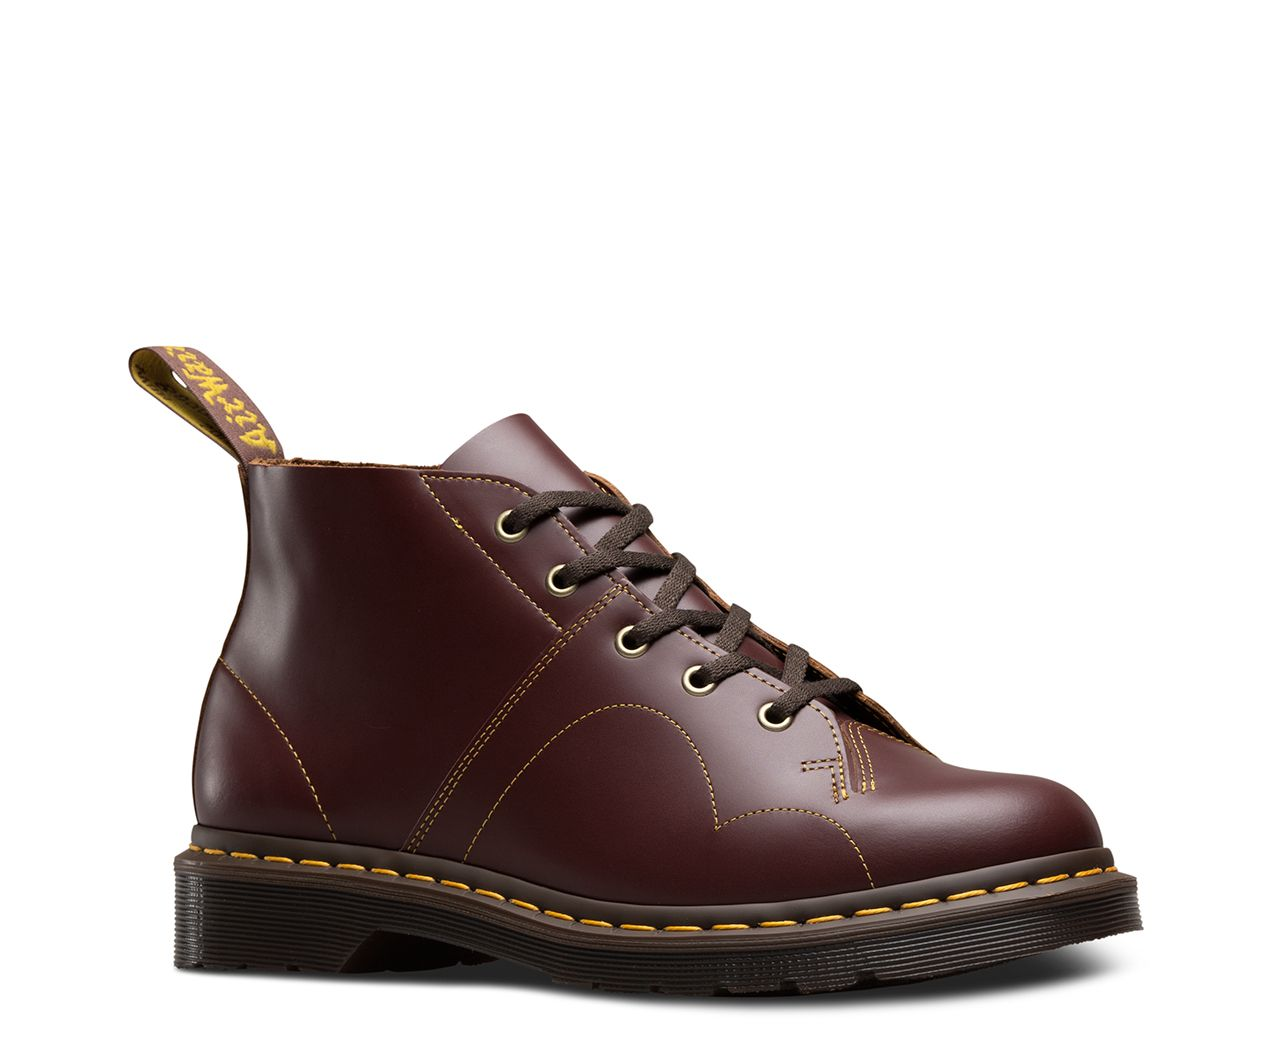 CHURCH SMOOTH LEATHER MONKEY BOOTS | Women's Boots | Dr